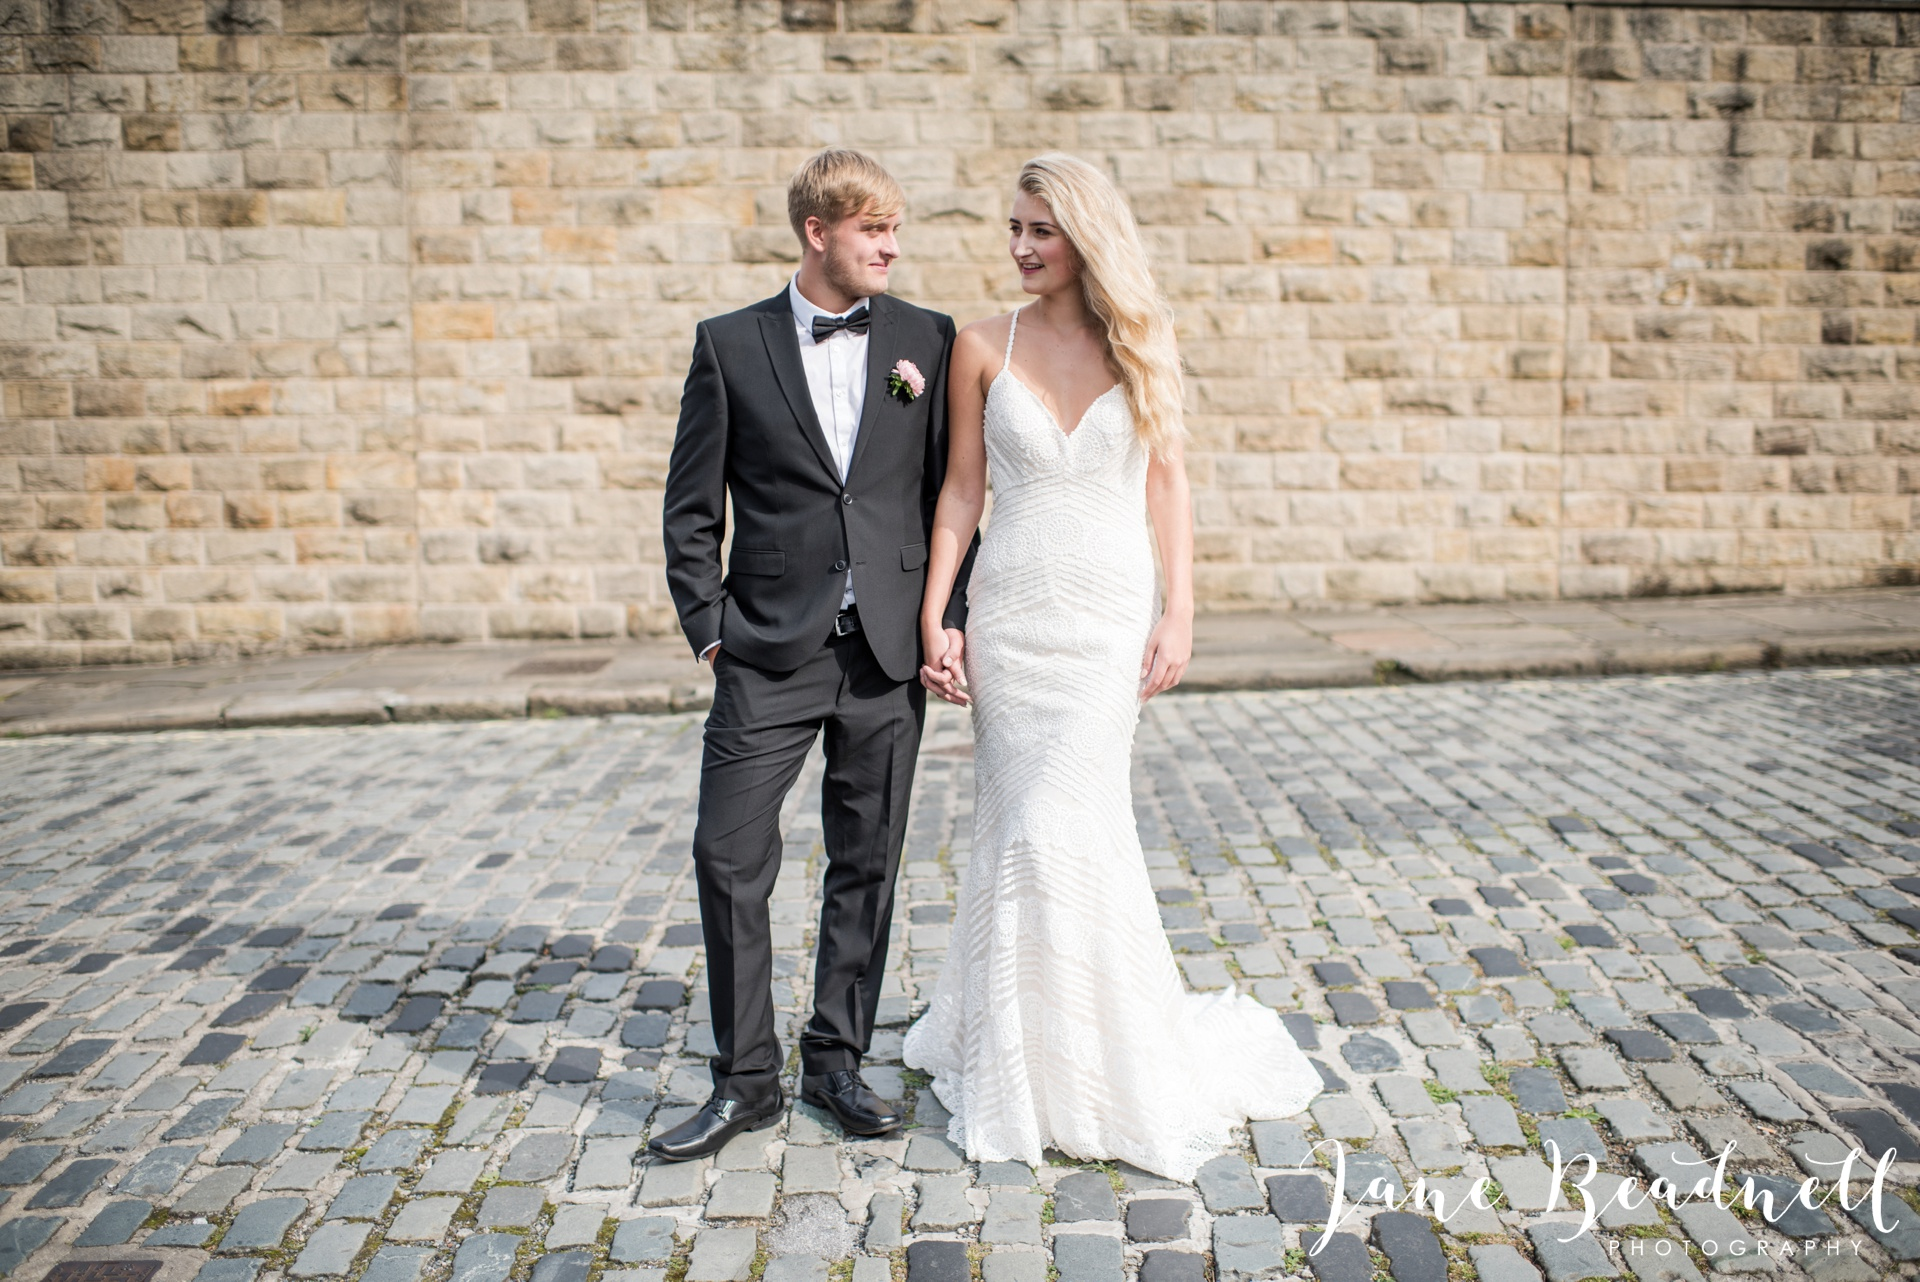 yorkshire-fine-art-wedding-photographer-jane-beadnell-photography-with-leafy-couture-wedding-flowers_0019